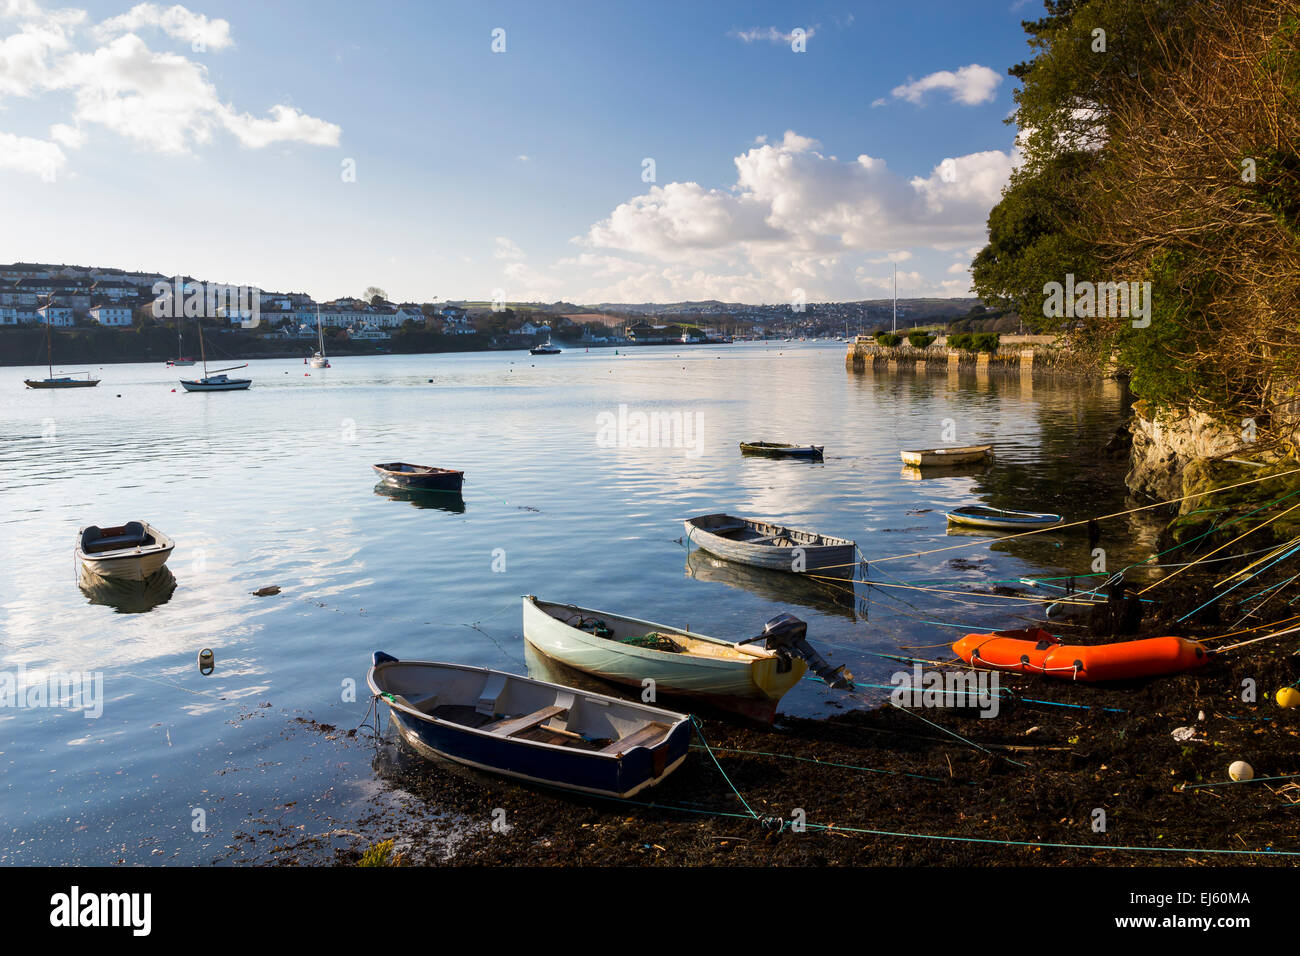 The coastal village of Flushing on the Penryn River, Part of the Carrick Roads Cornwall England UK Europe - Stock Image